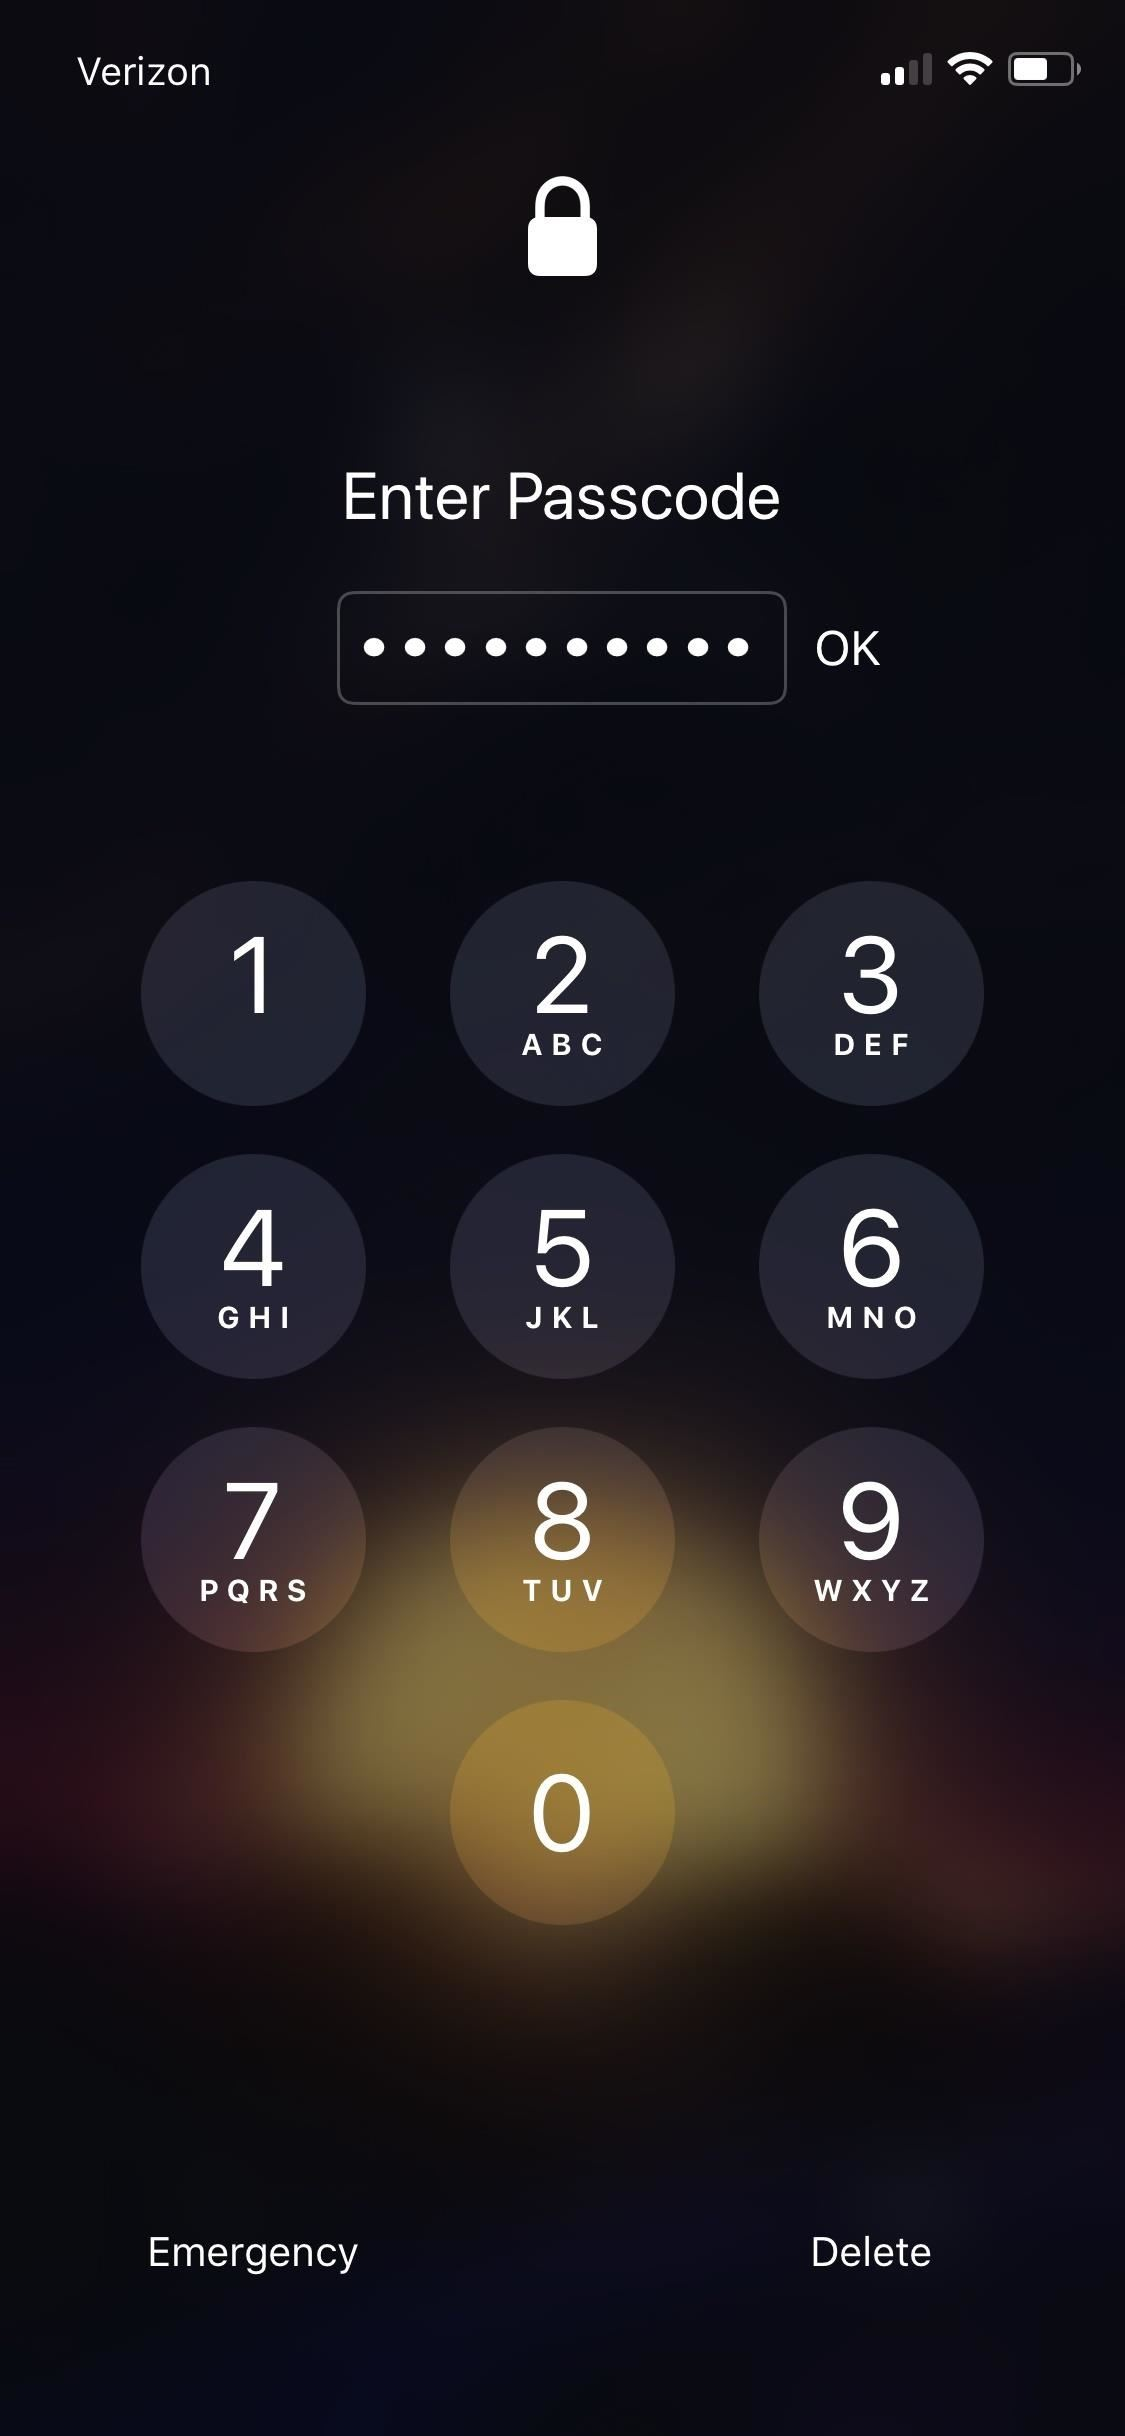 8 Passcode Tips for Keeping Hackers & Law Enforcement Out of Your iPhone for Good